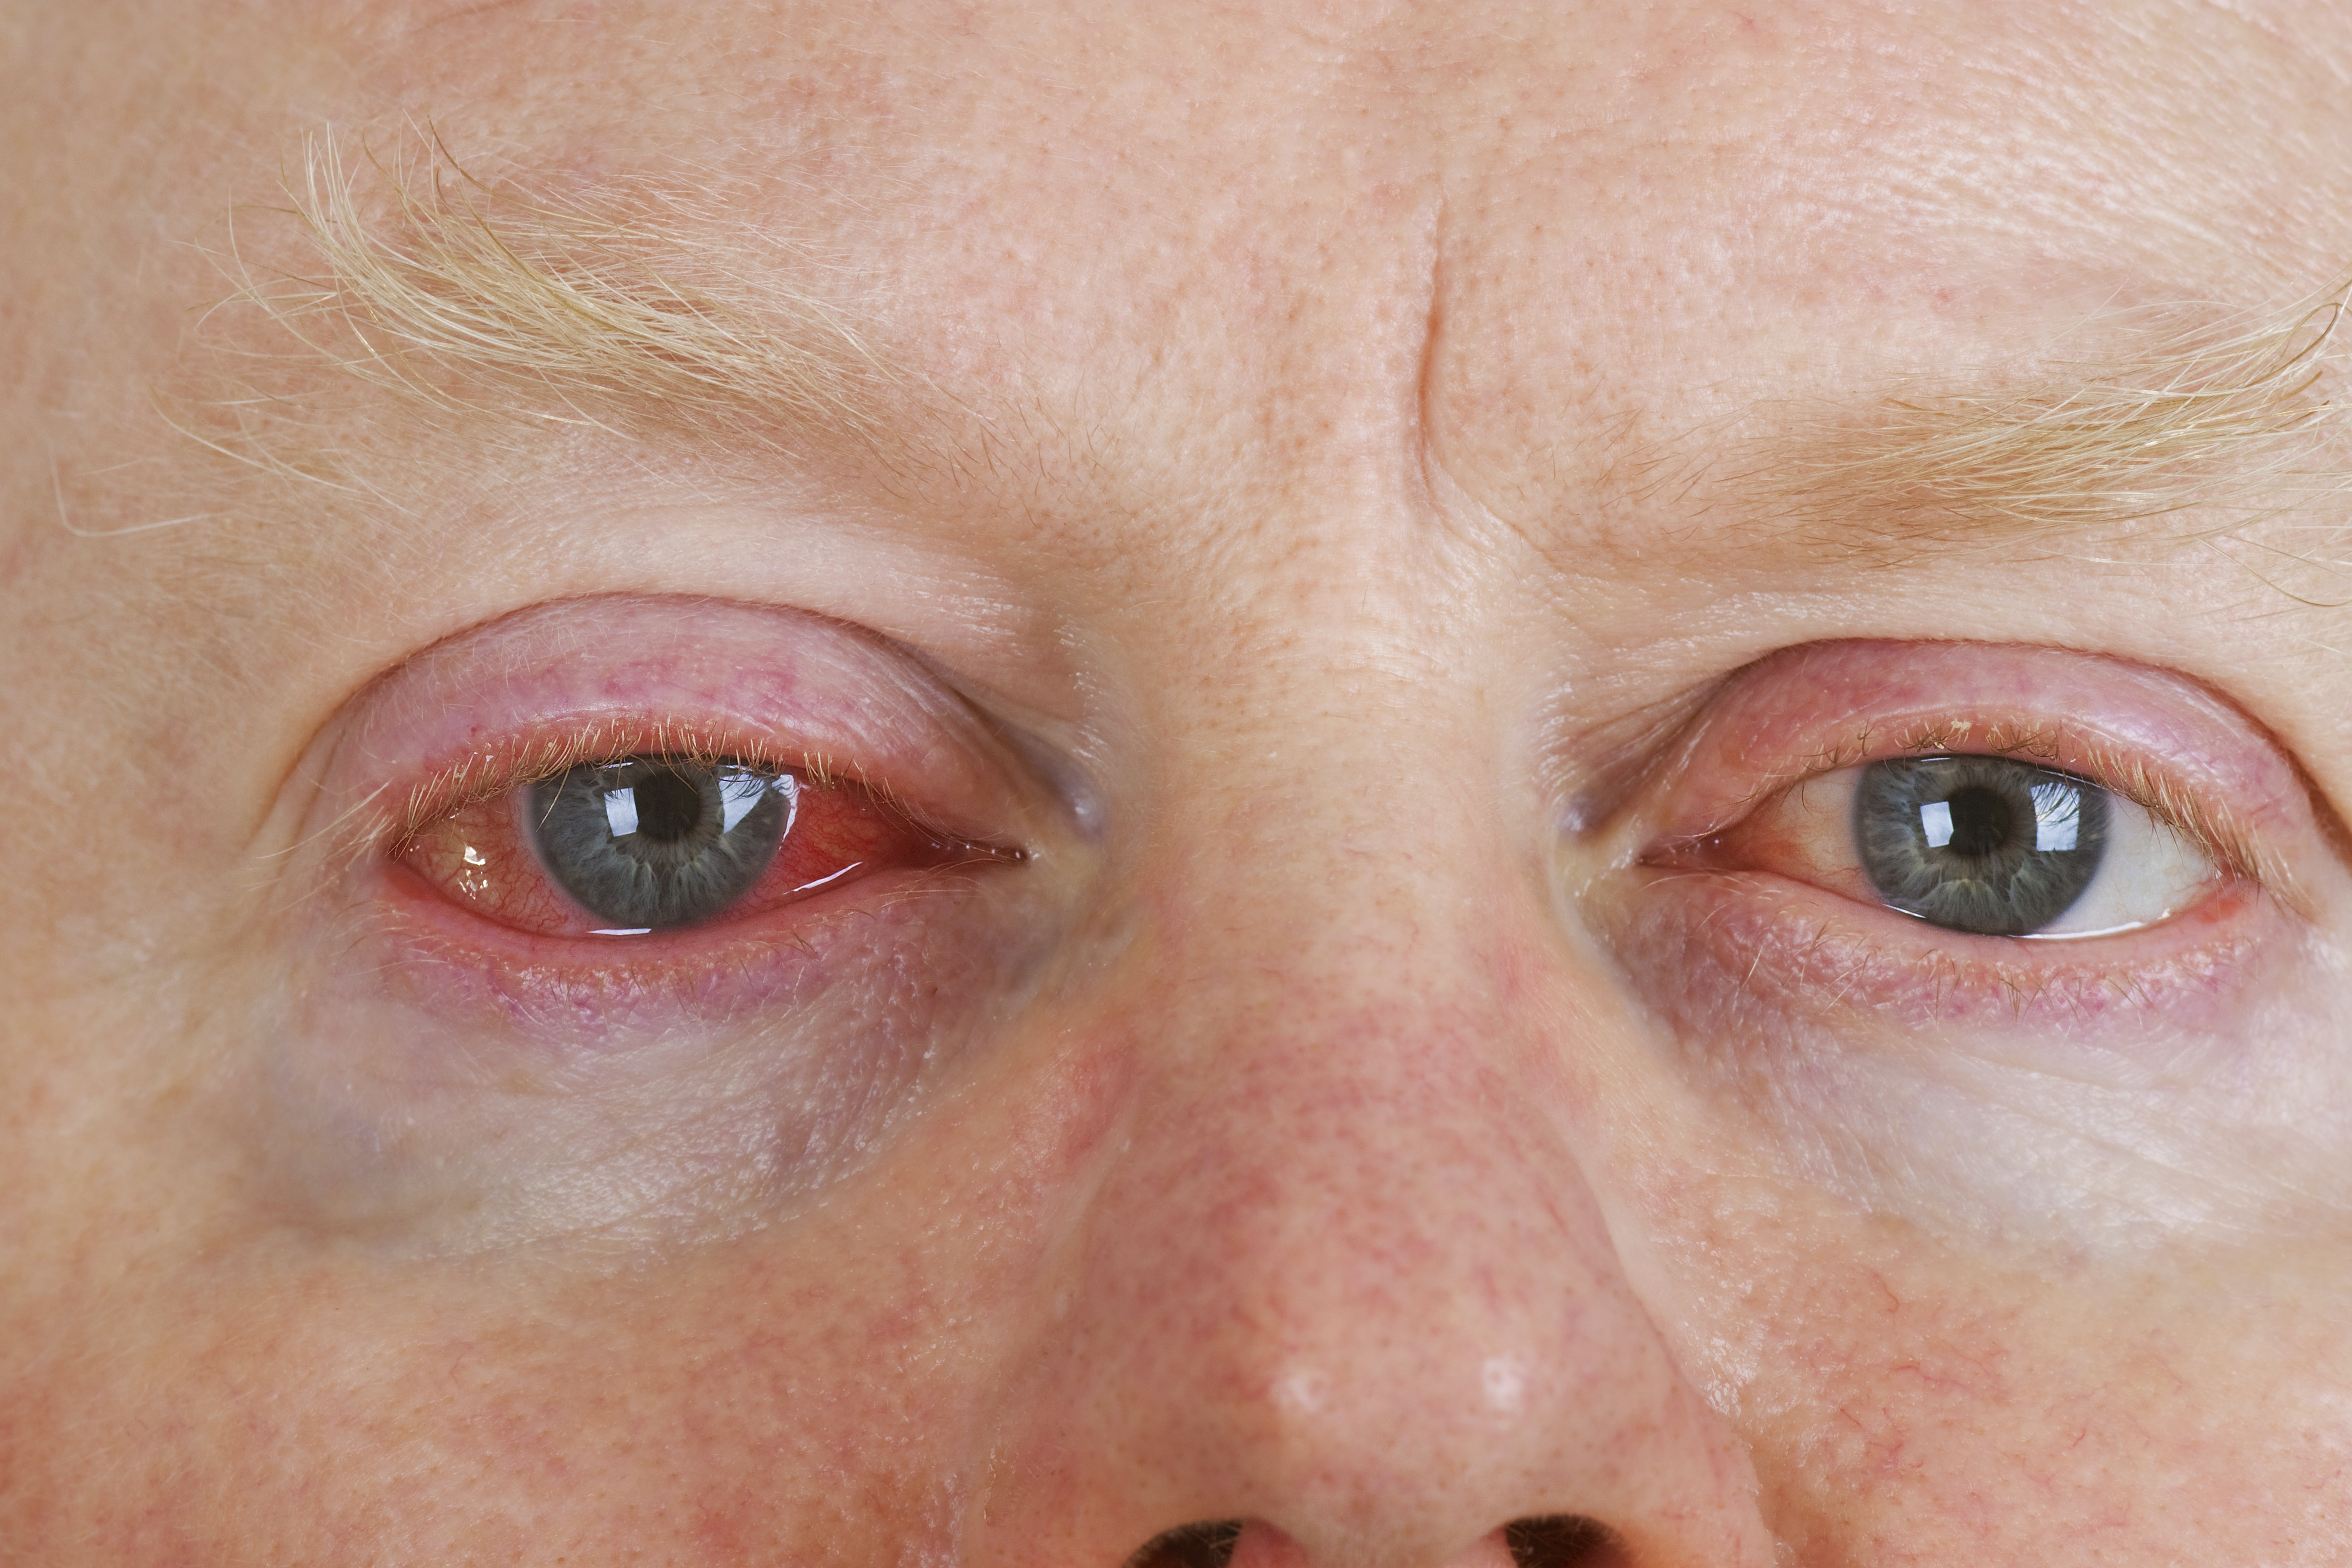 An image depicting a person suffering from wateriness in one eye symptoms